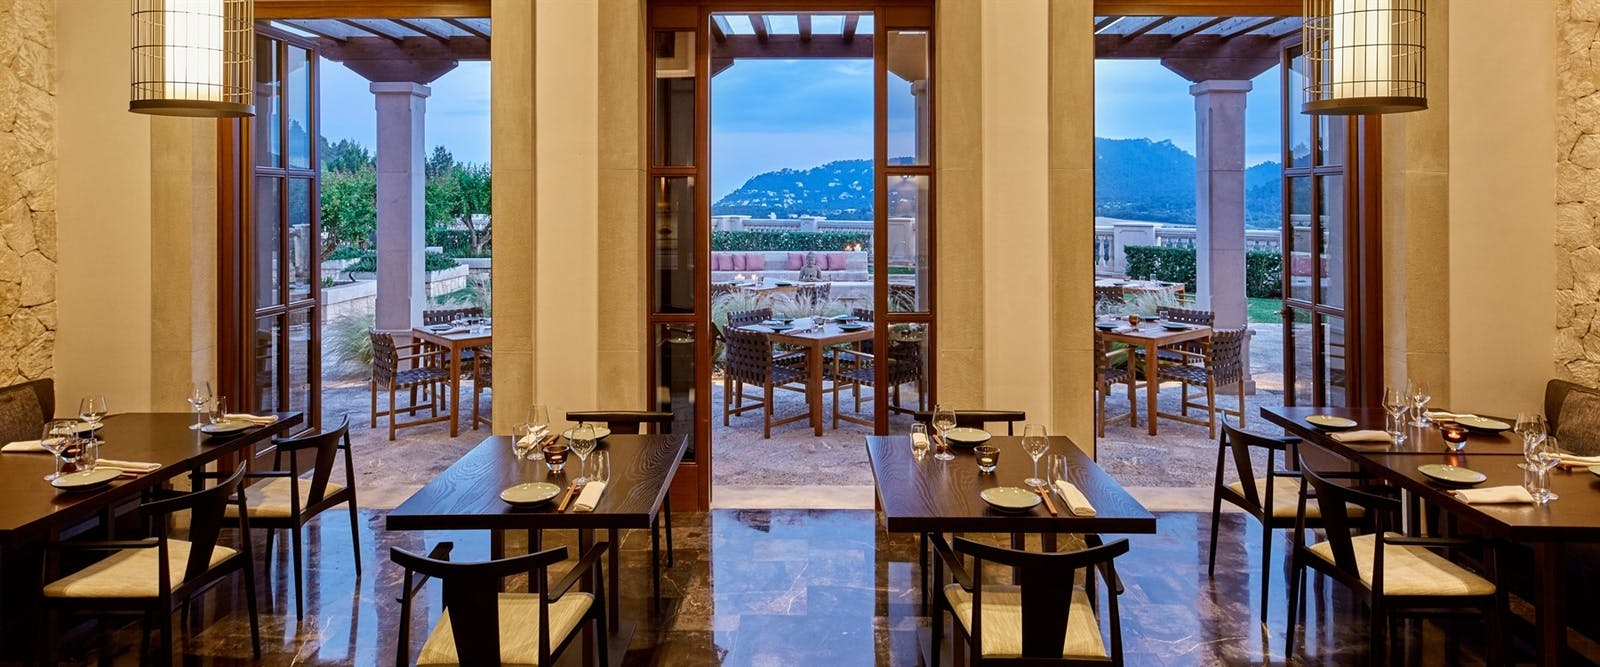 Asia Restaurant at Cap Vermell Grand Hotel, Mallorca, Spain